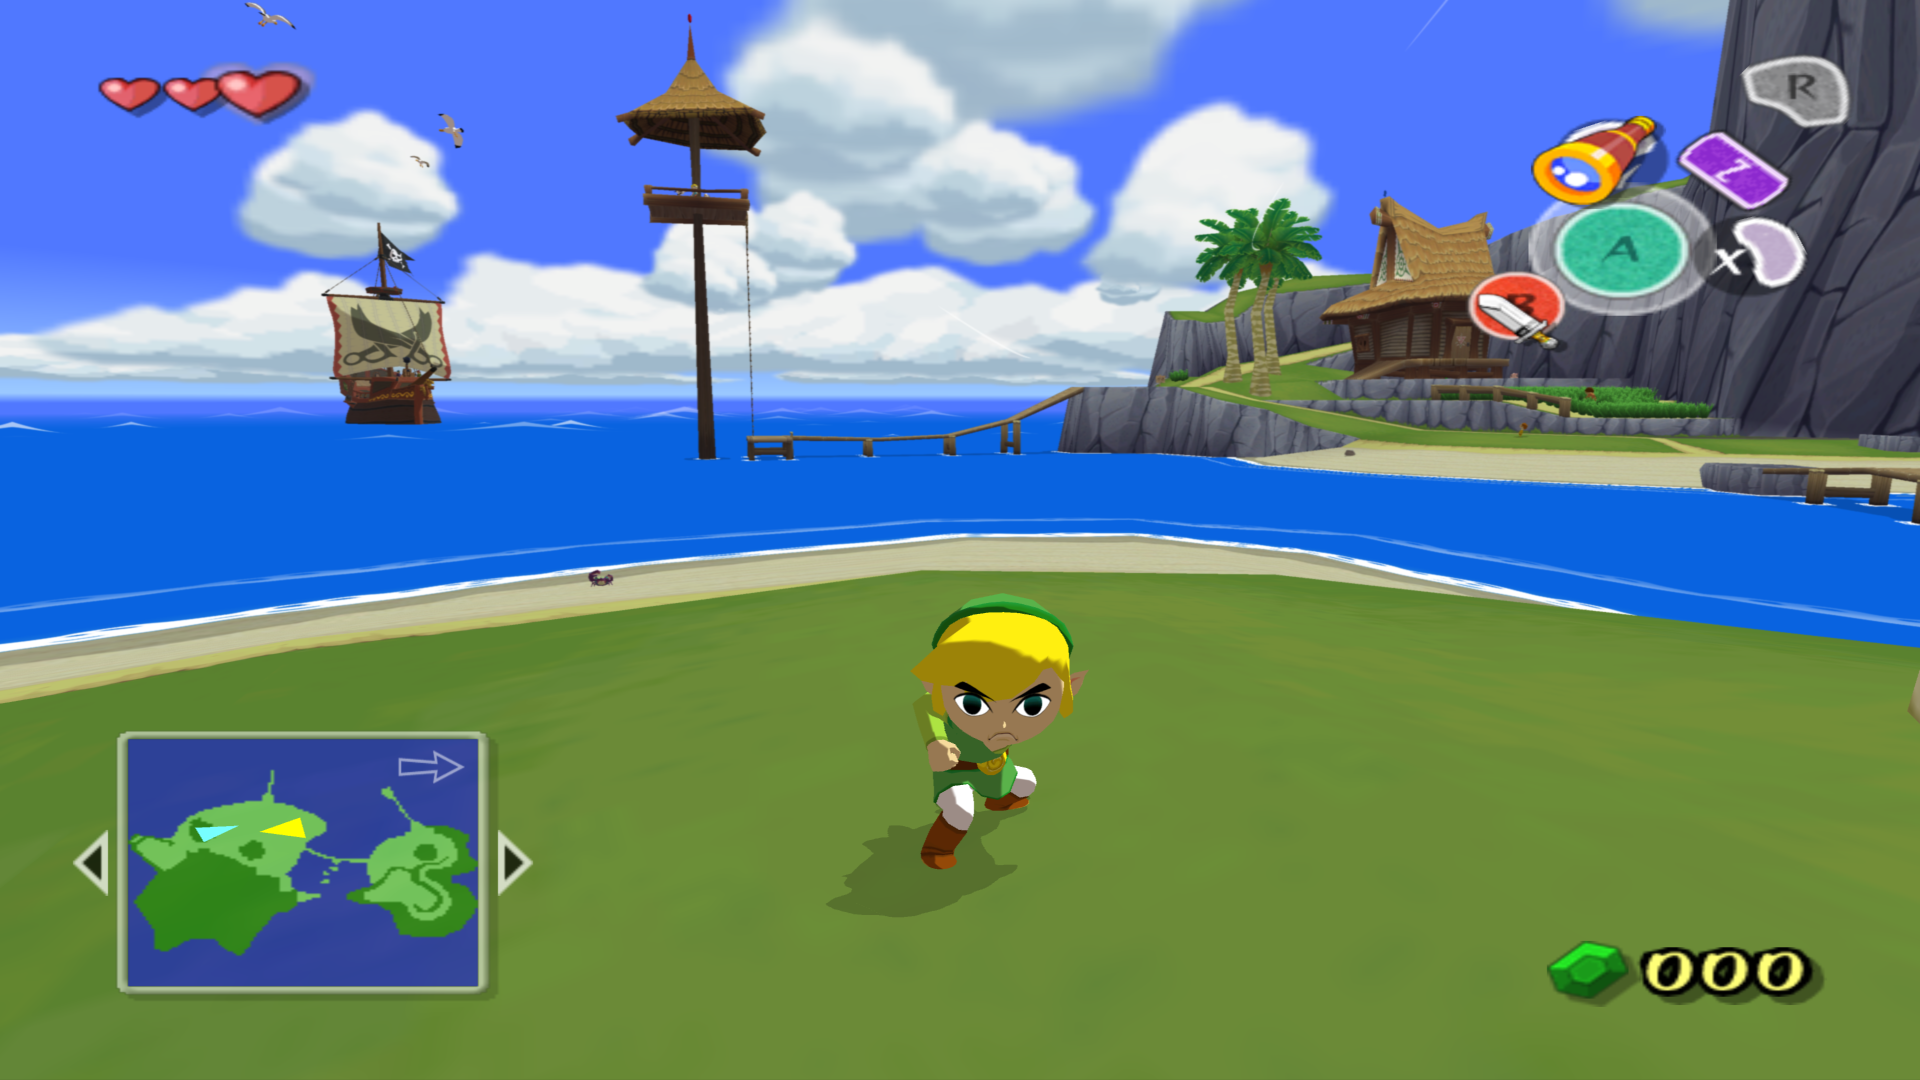 The Legend of Zelda: The Wind Waker is 10 years old | NeoGAF